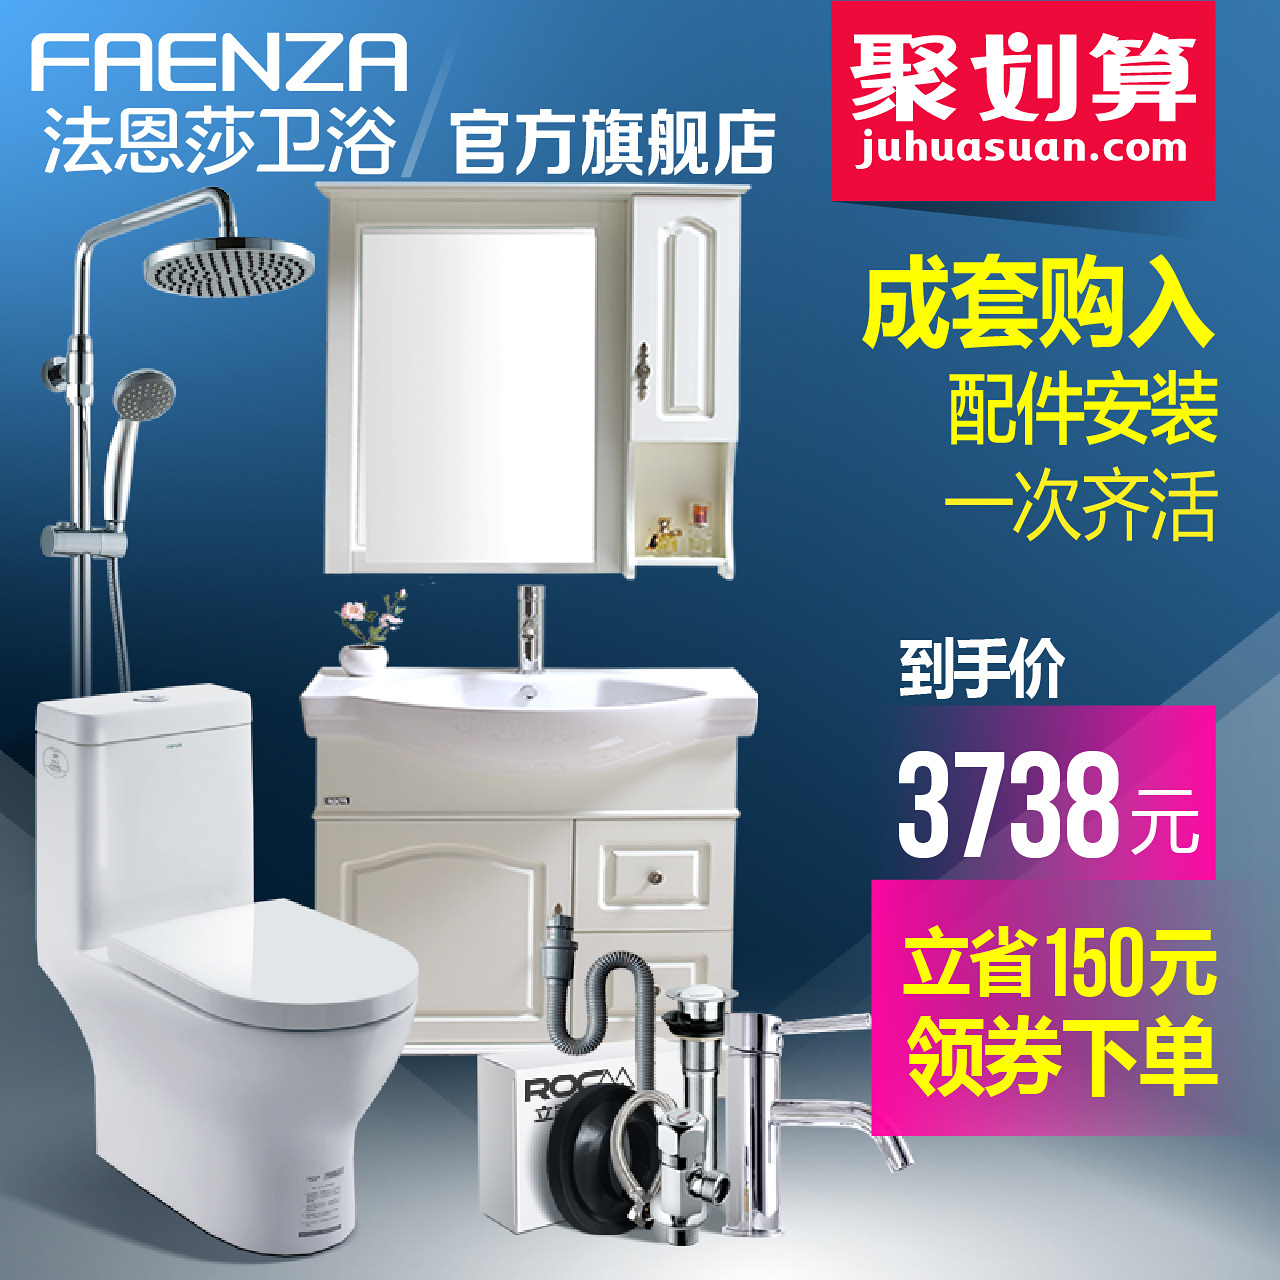 Faenza bathroom cabinet bathroom cabinet simple european washbasin cabinet combination bathroom cabinets bathroom toilet water saving three water shower combo